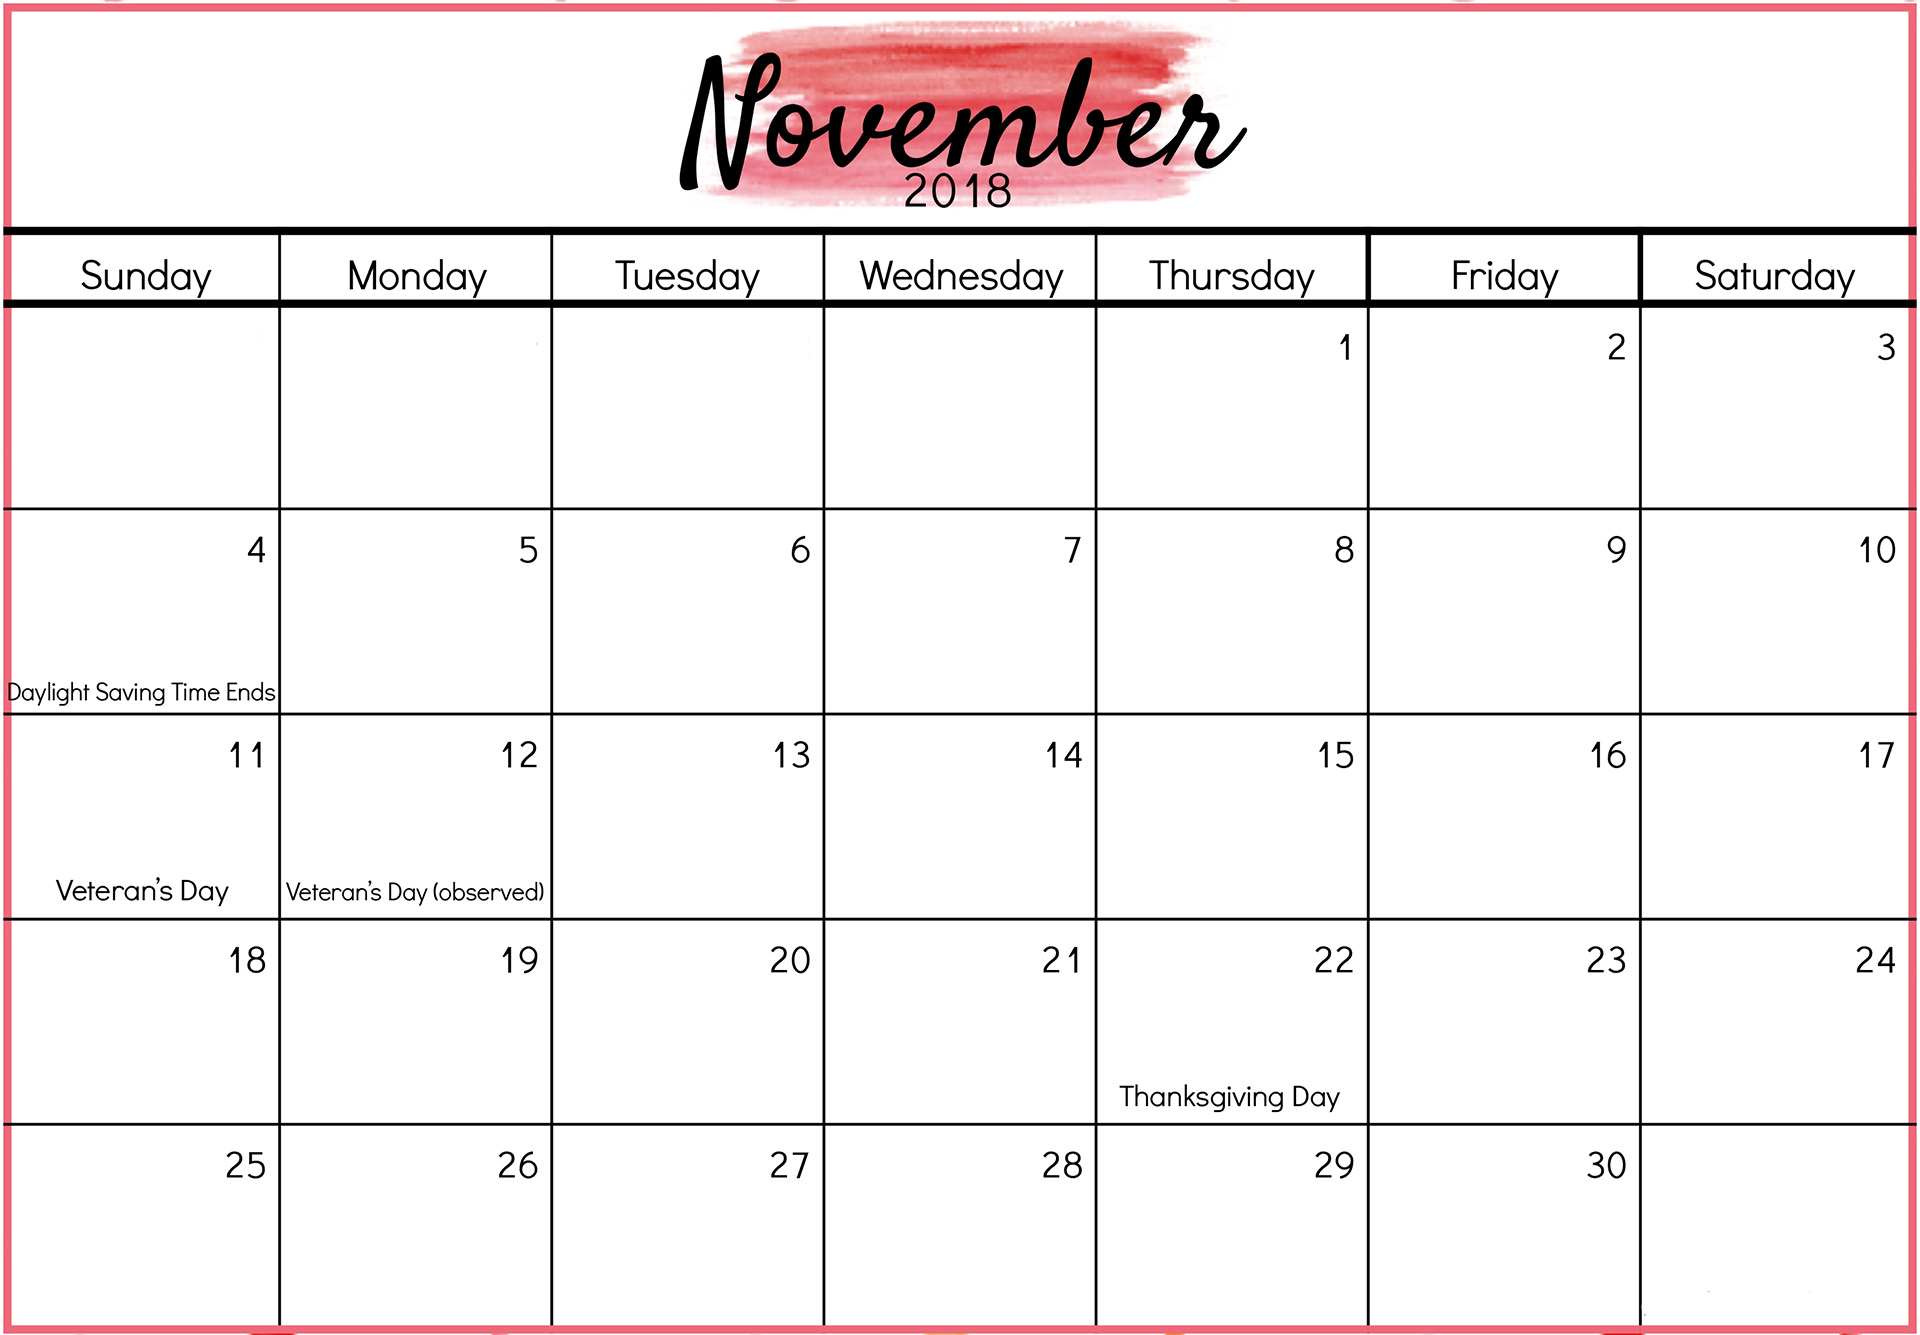 November 2018 Blank Calendar with Holidays Printable Template